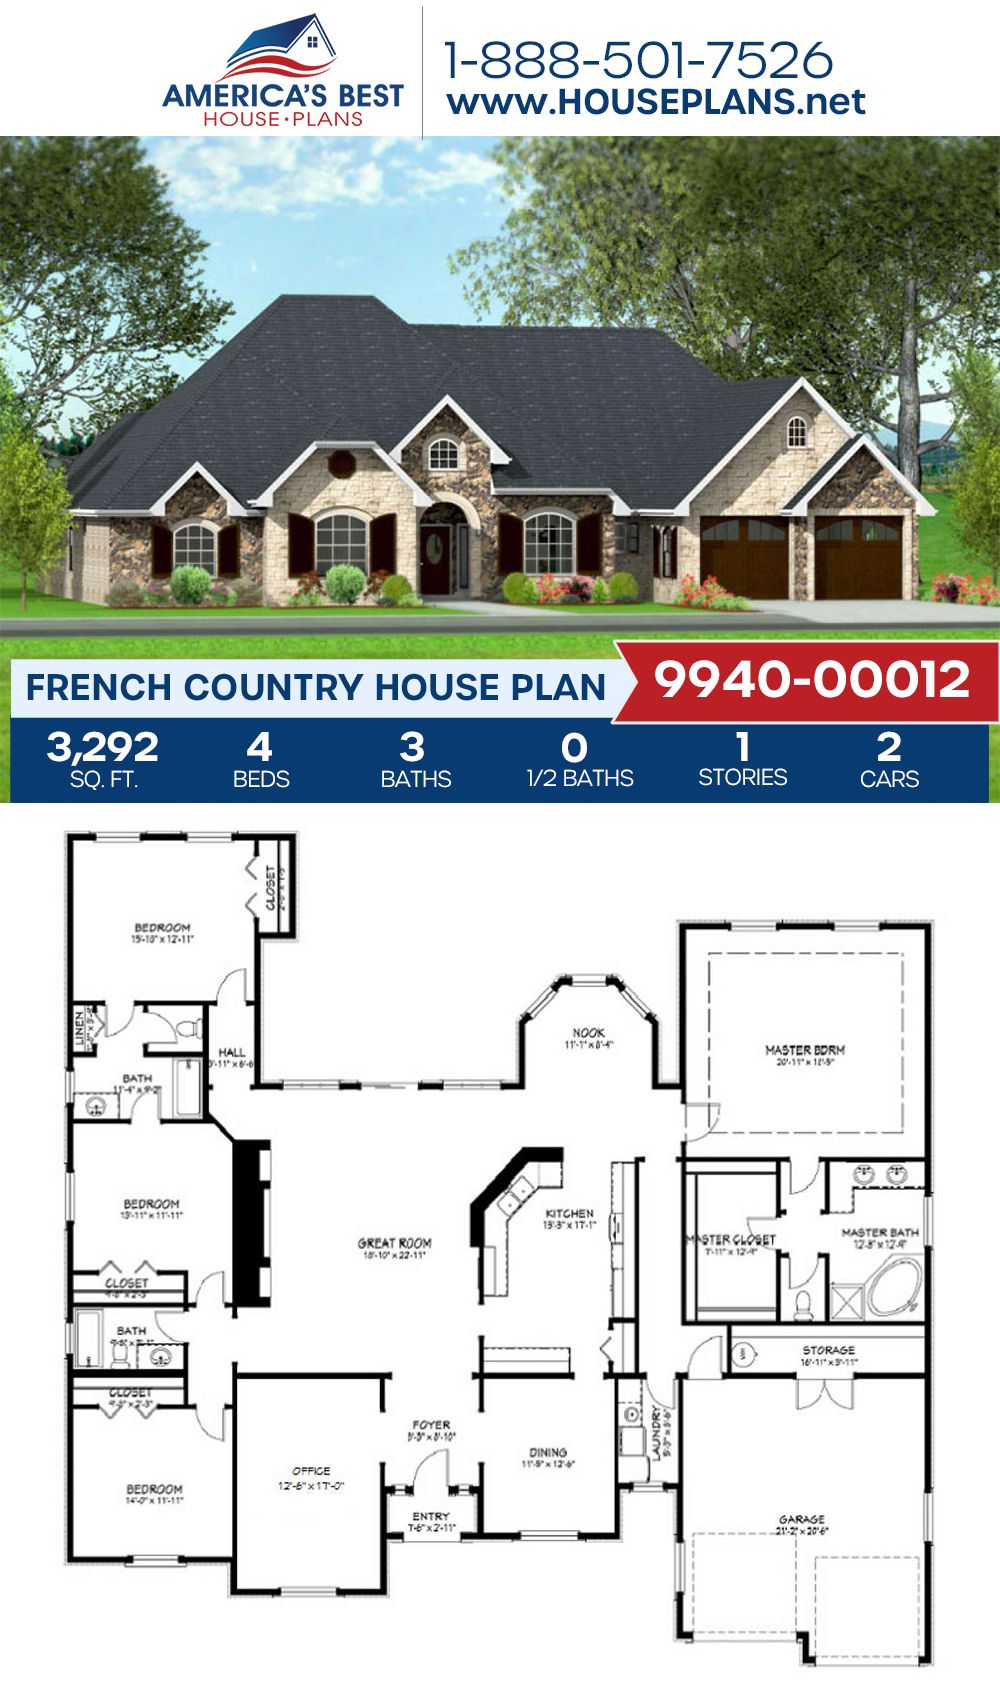 House Plan 9940 00012 French Country Plan 3 292 Square Feet 4 Bedrooms 3 Bathrooms French Country House Plans French Country House Country House Plans